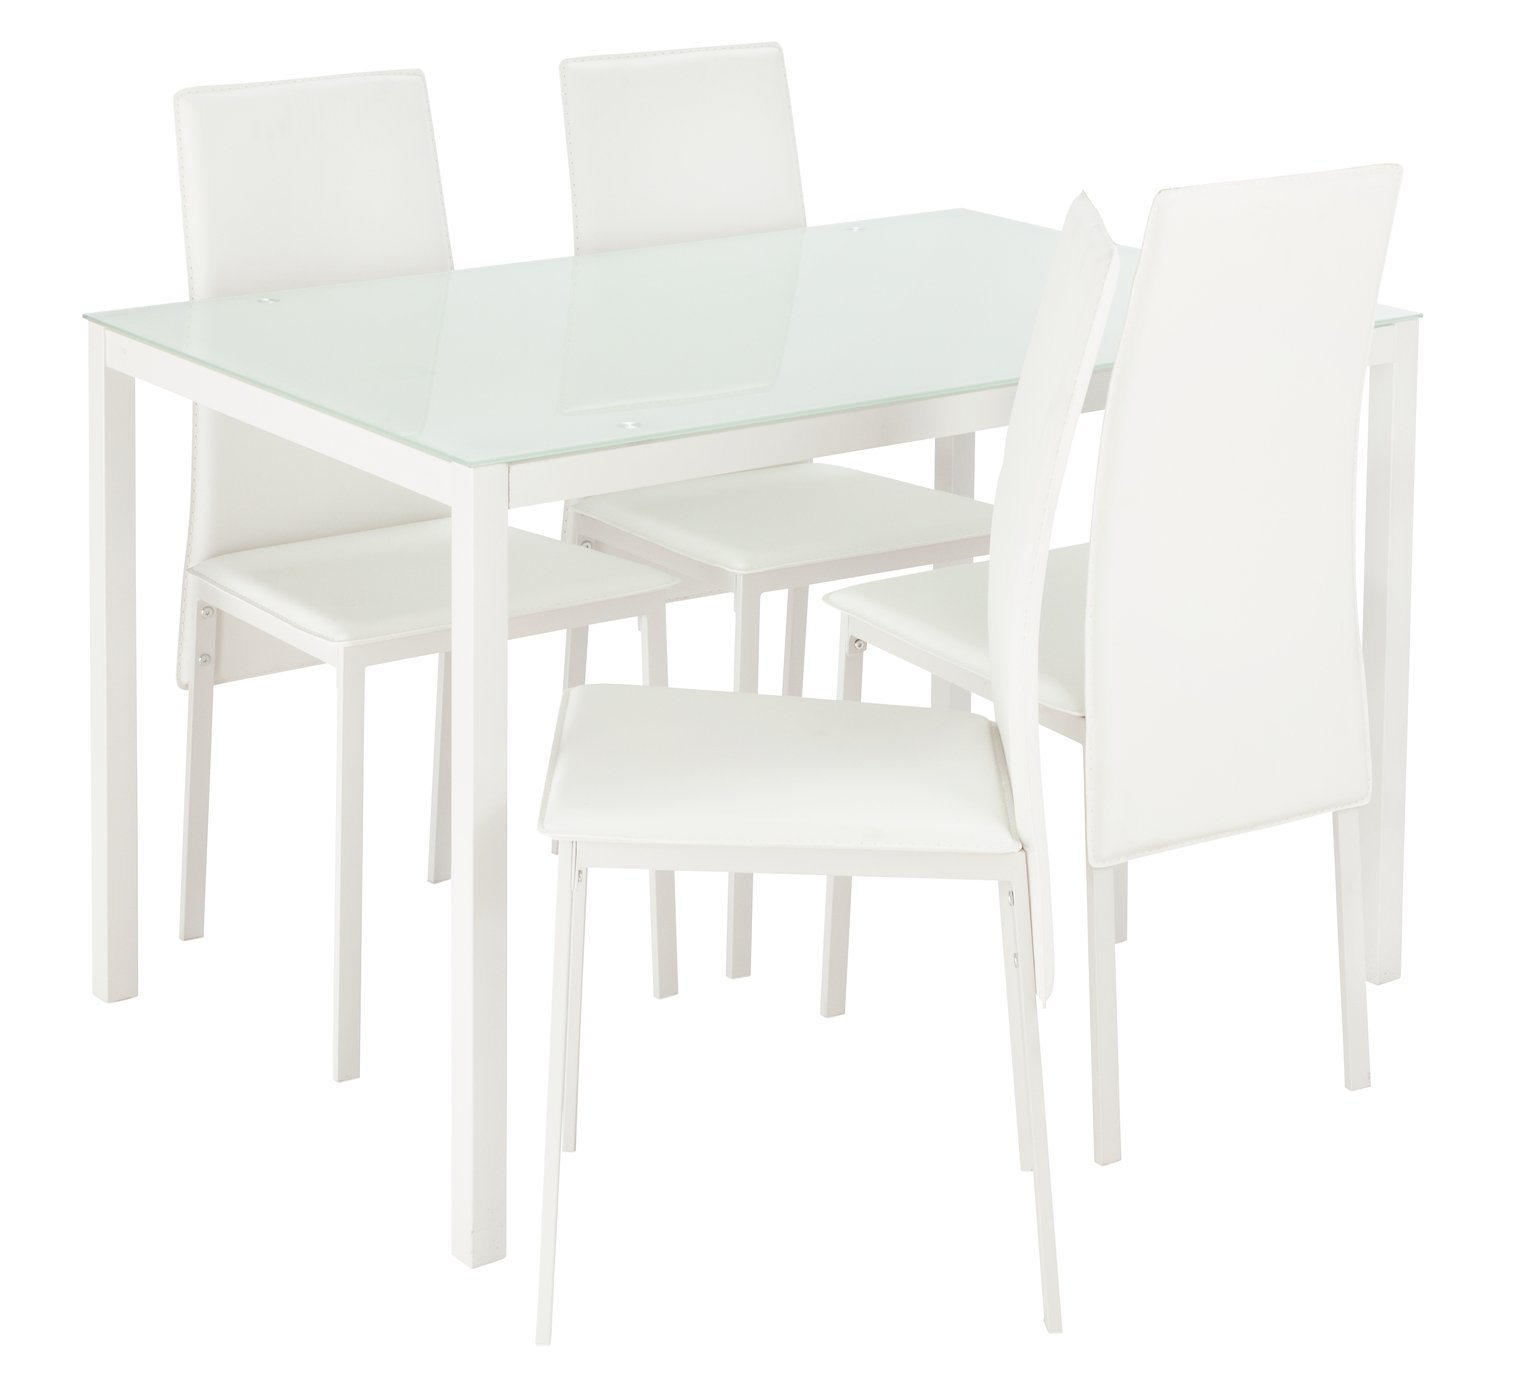 Hygena Lido Glass Dining Table U0026 4 Chairs   White